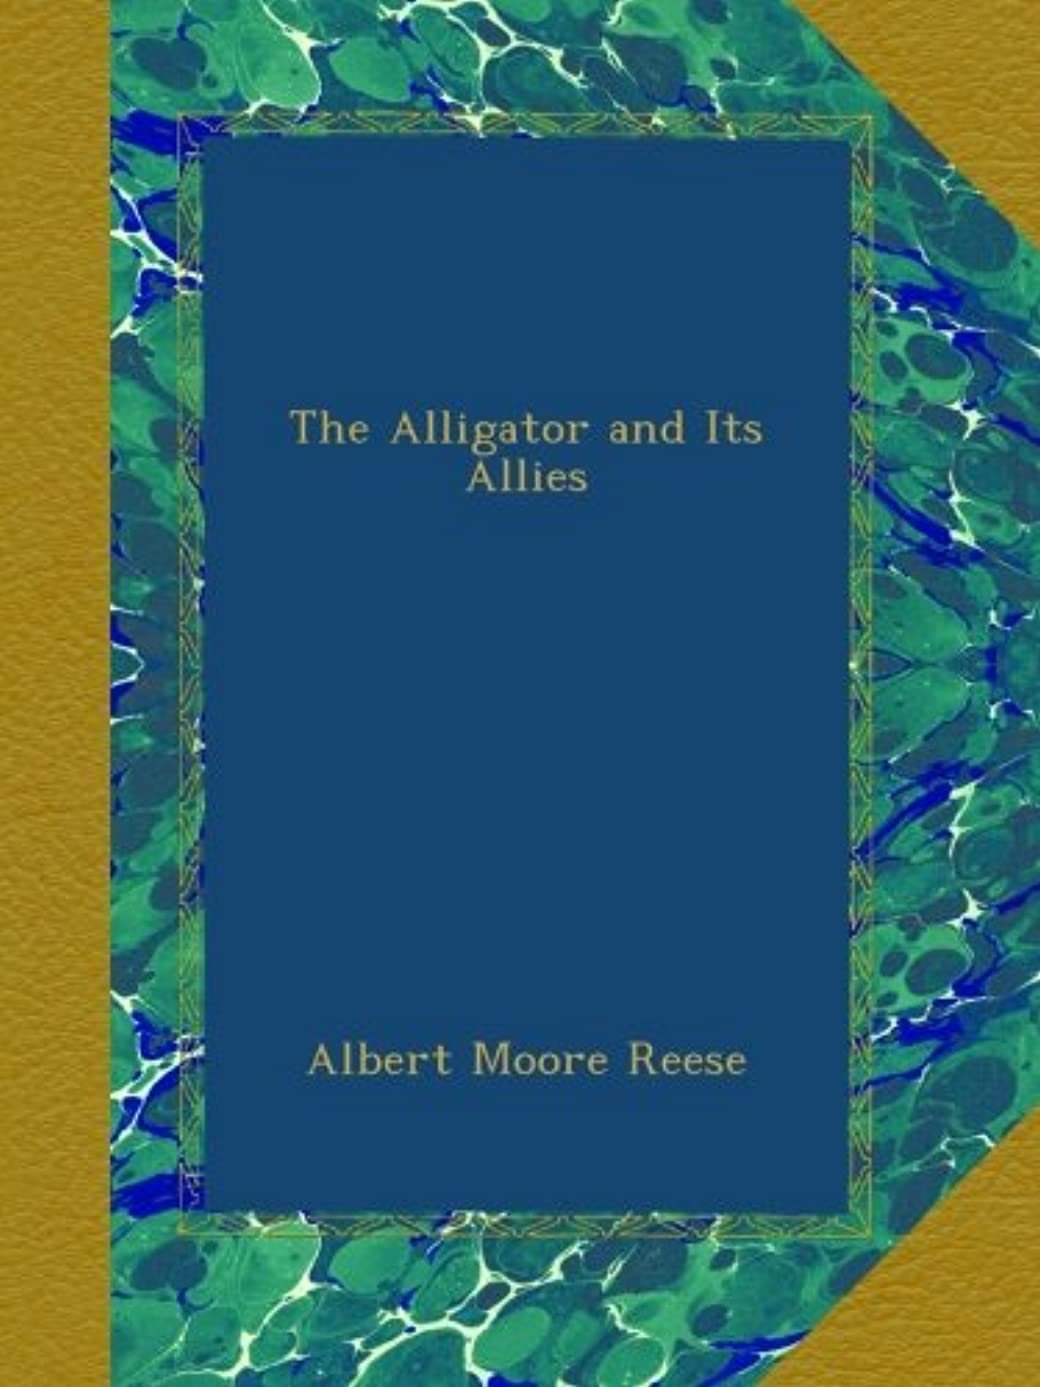 剥ぎ取る絶壁機転The Alligator and Its Allies